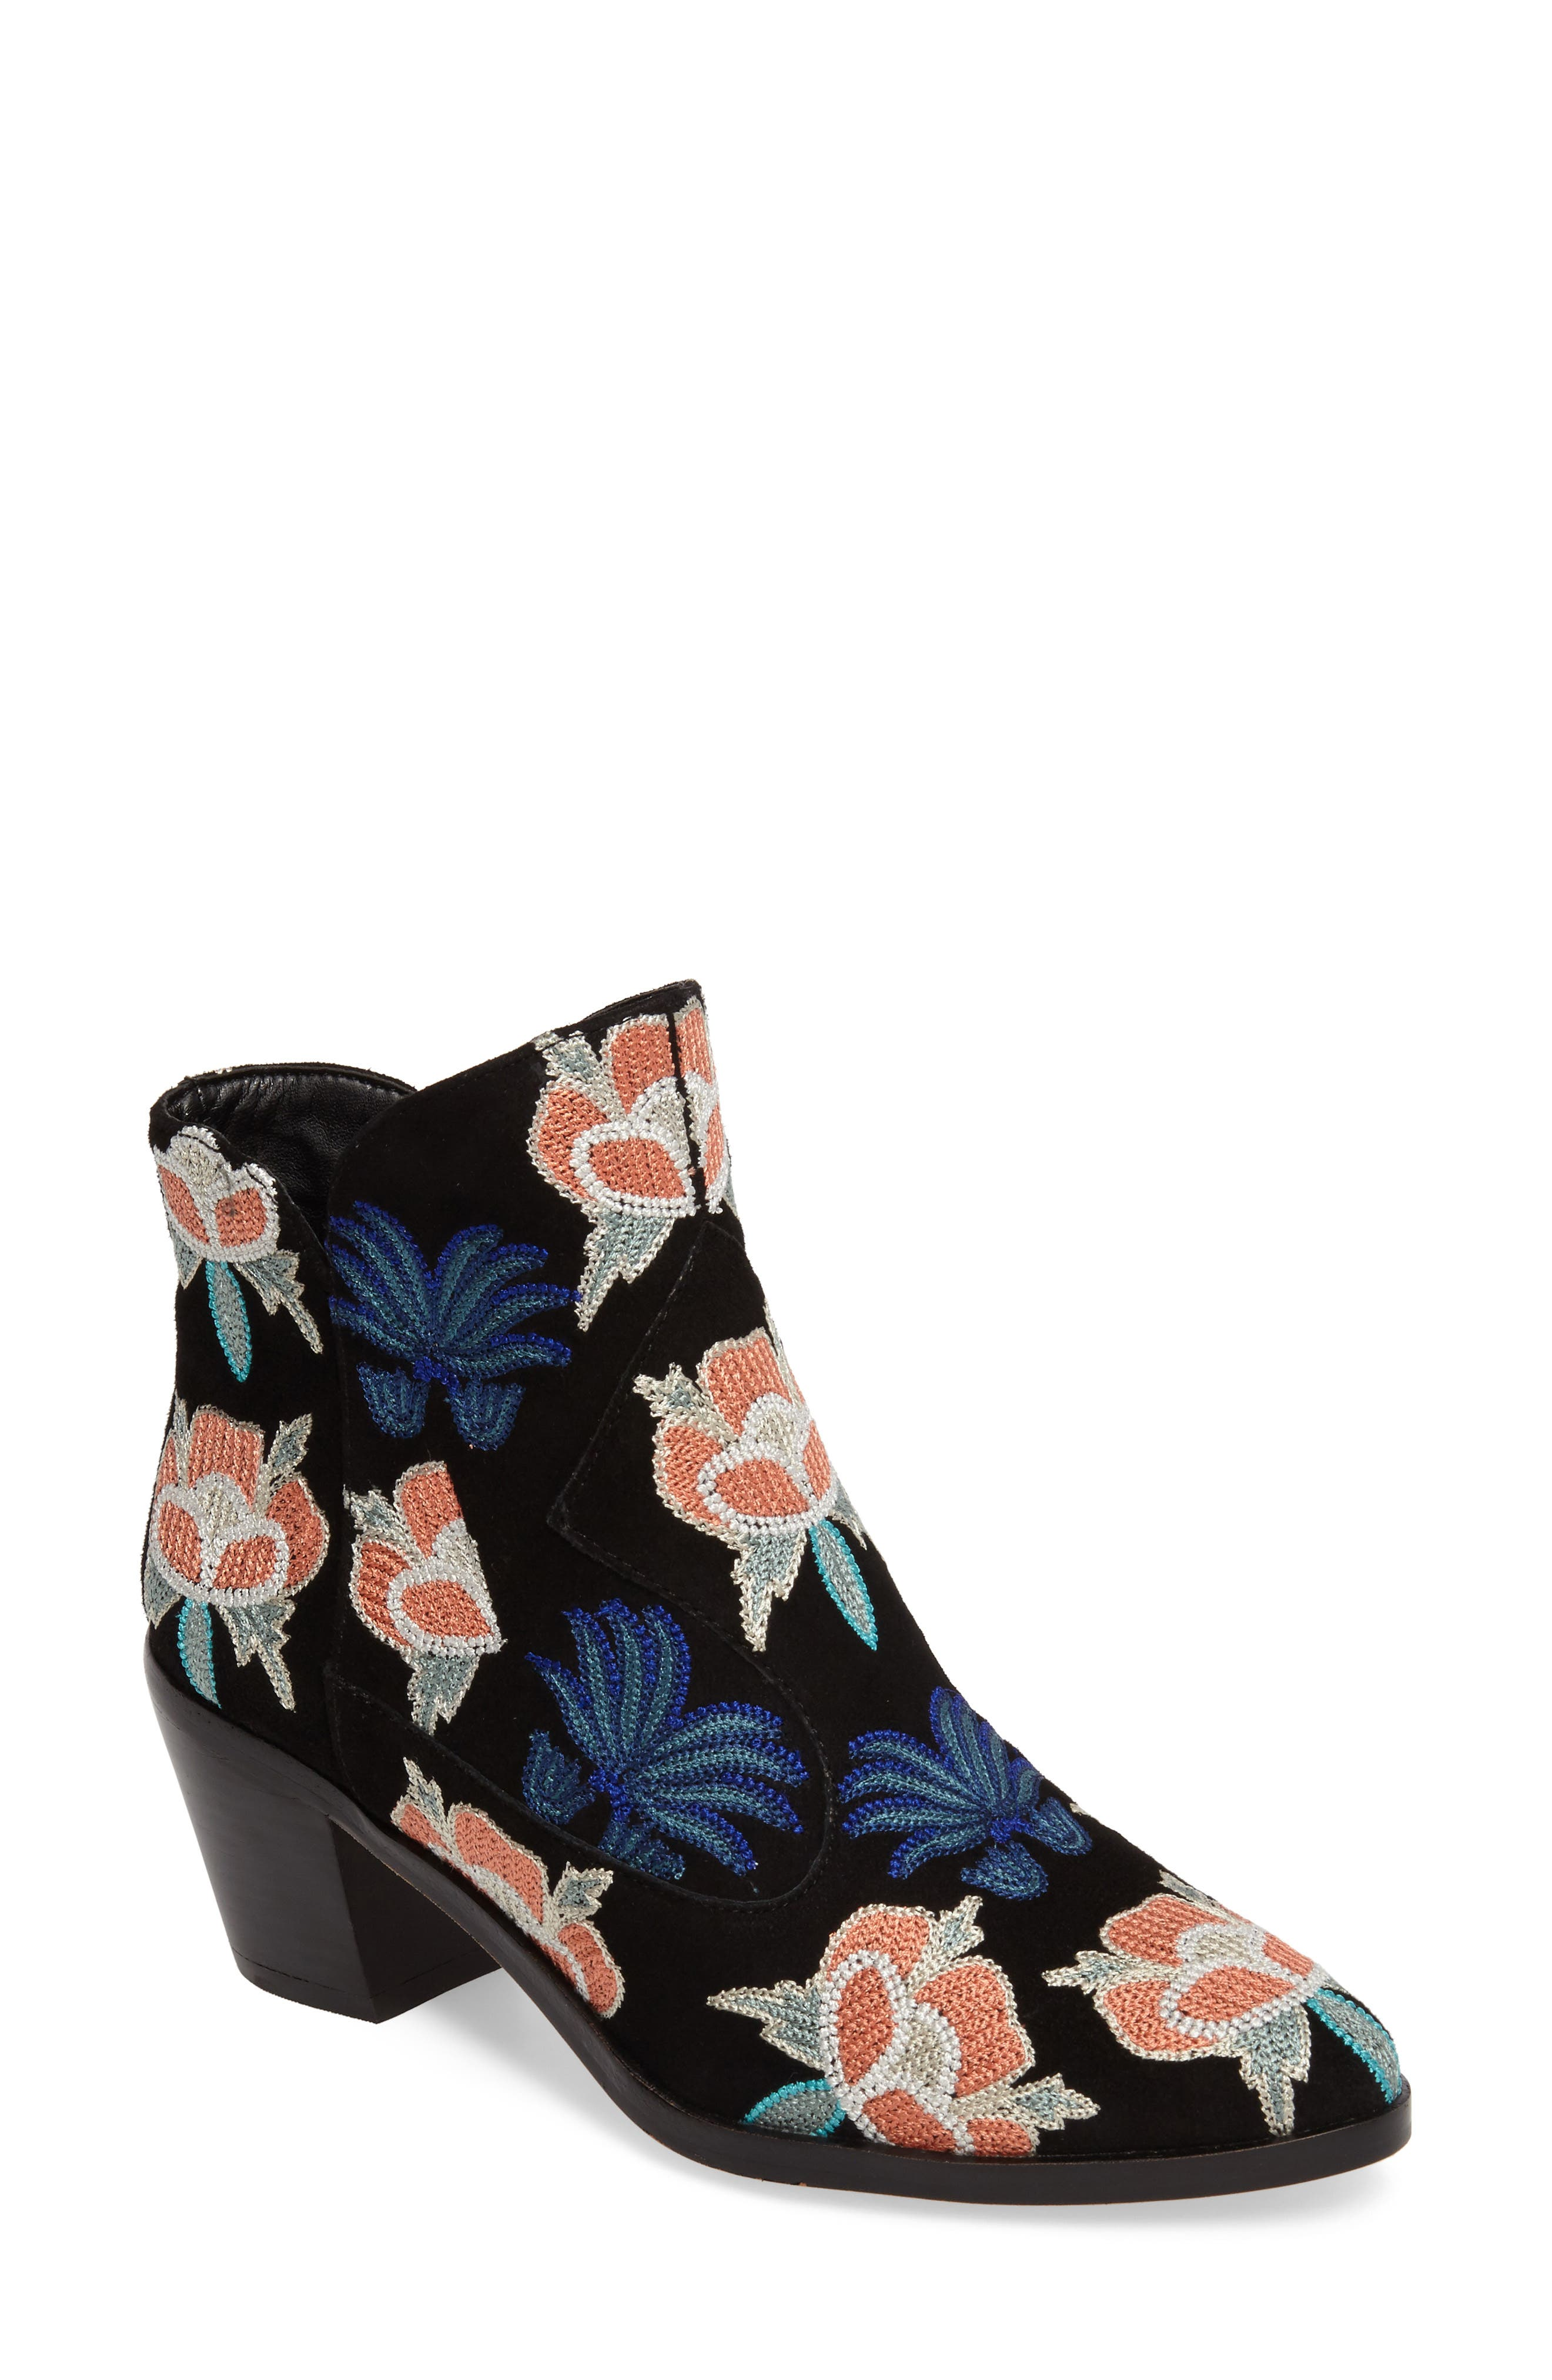 Lulu Too Flower Embroidered Bootie,                             Main thumbnail 1, color,                             004